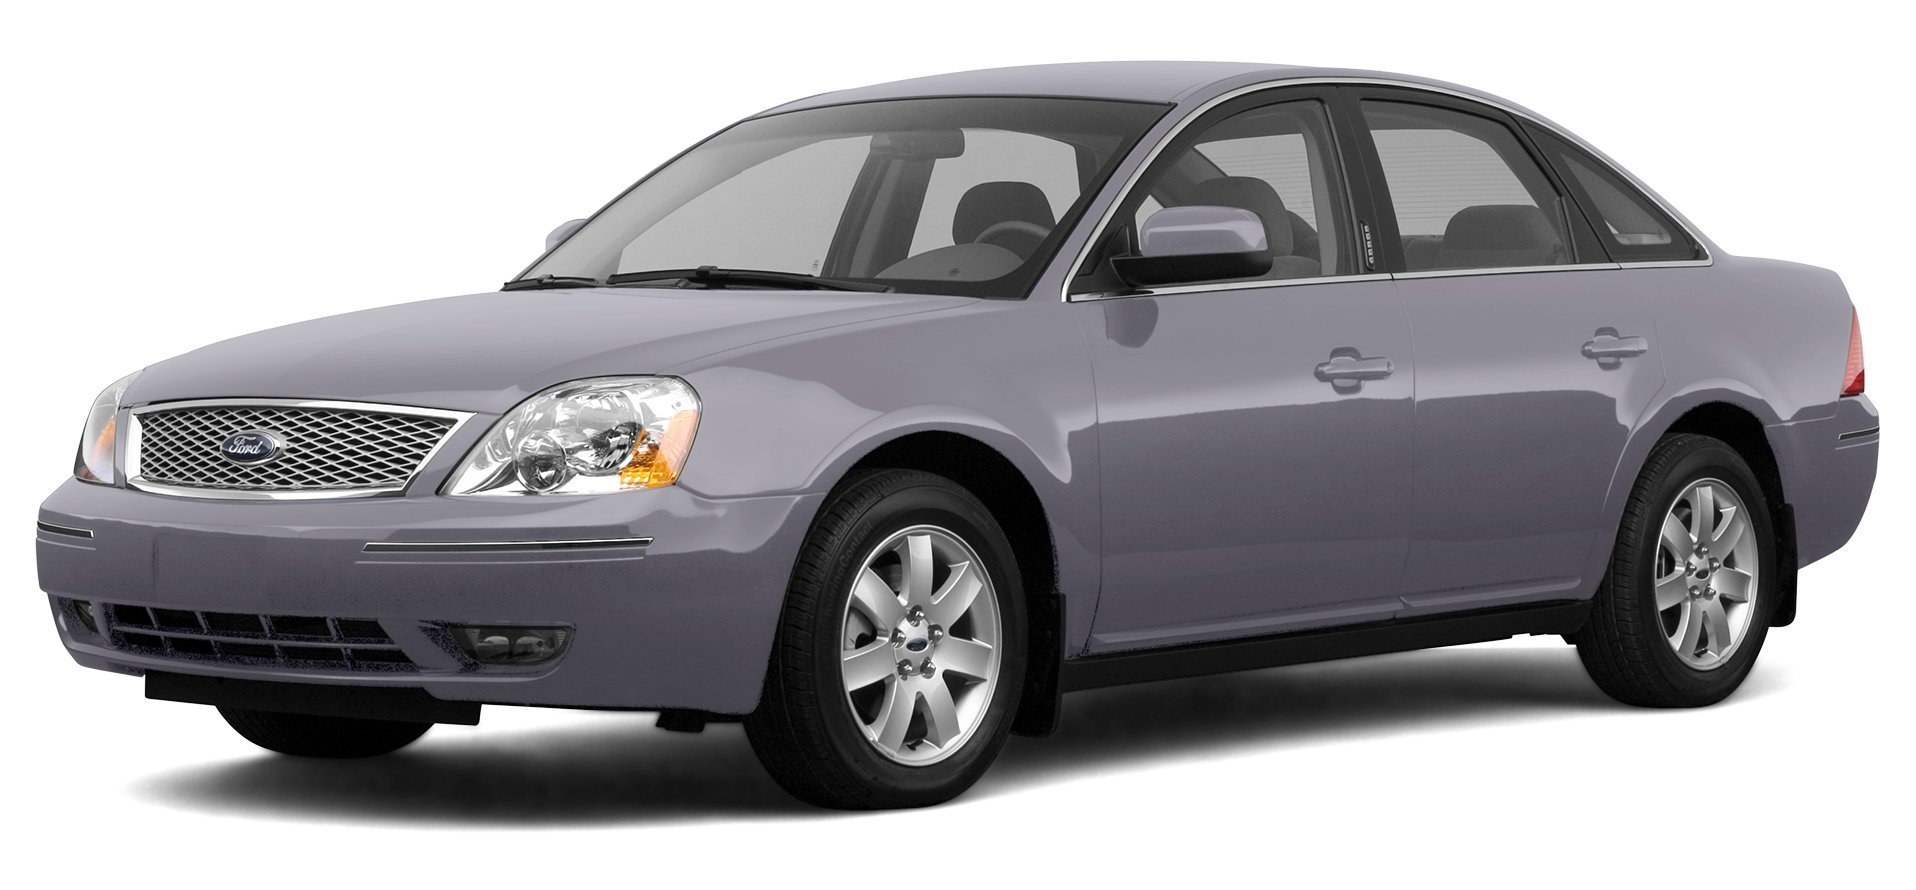 2007 ford five hundred limited 4 door sedan all wheel drive